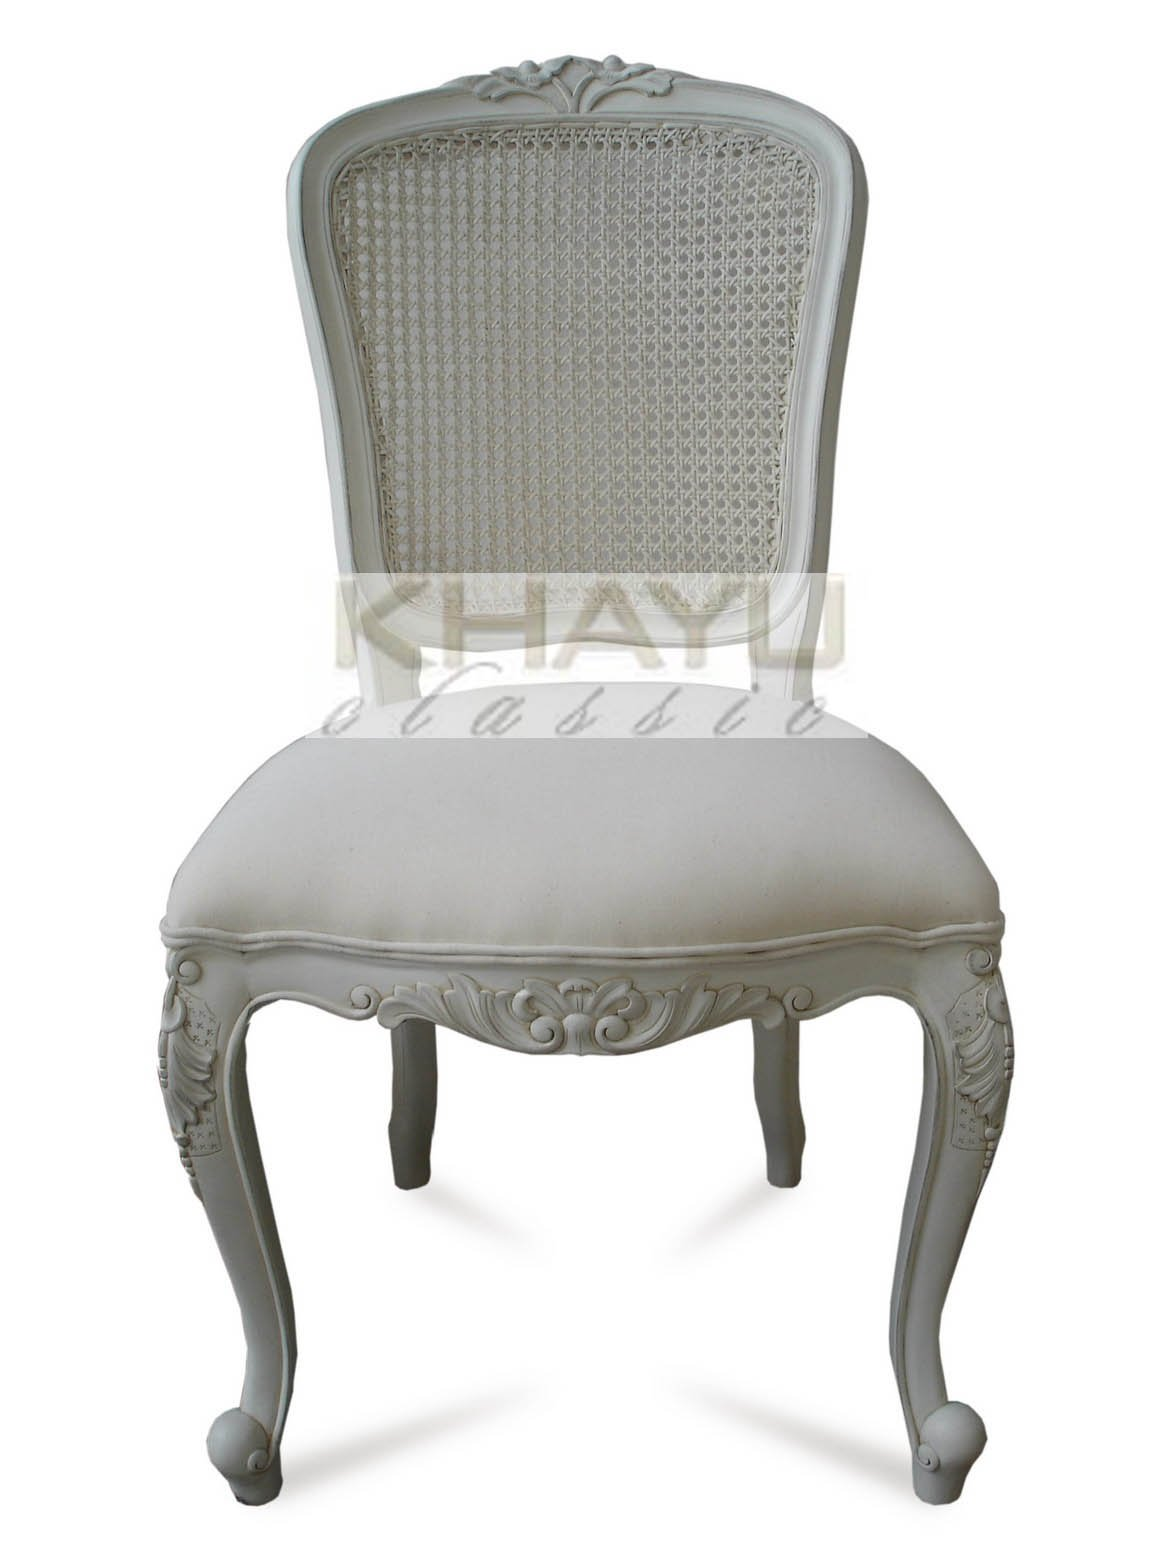 Louis Xiv Chair Louis Xiv Chair Suppliers and Manufacturers at